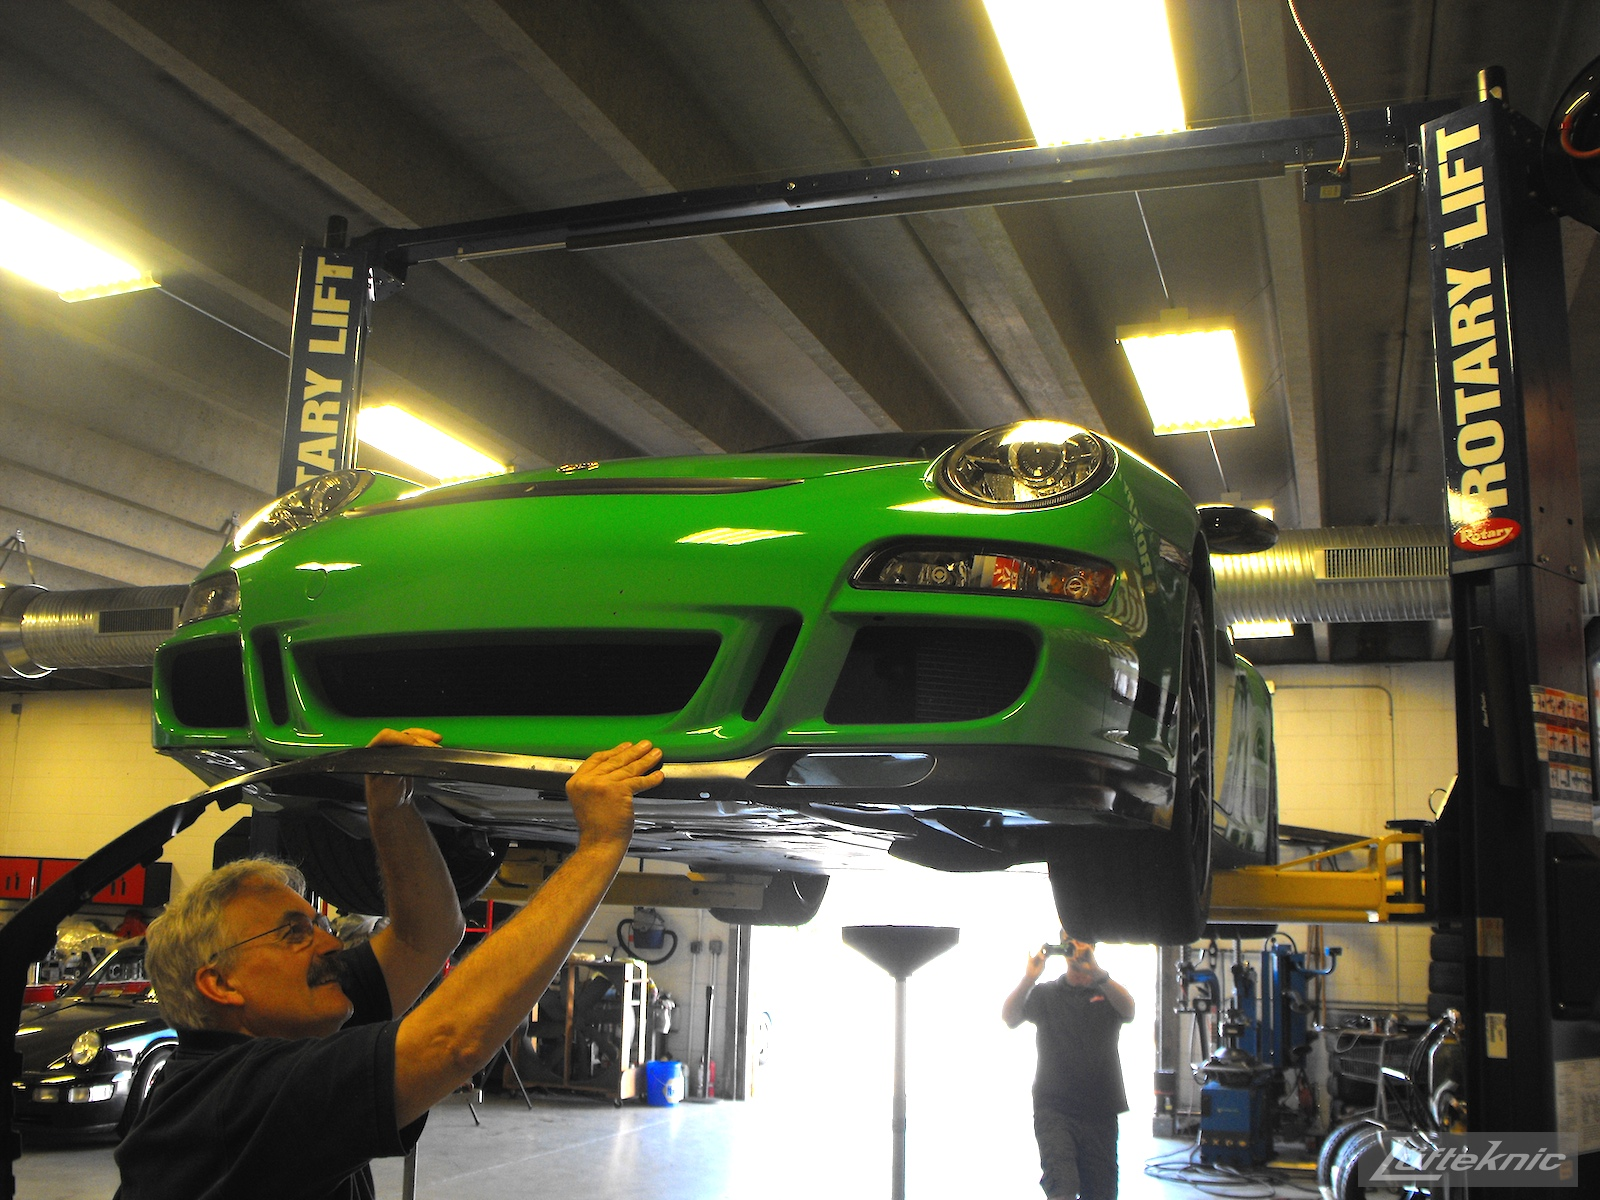 A Lufteknic employee removes the lower chin spoiler from a green Porsche 997.1 GT3 RS.